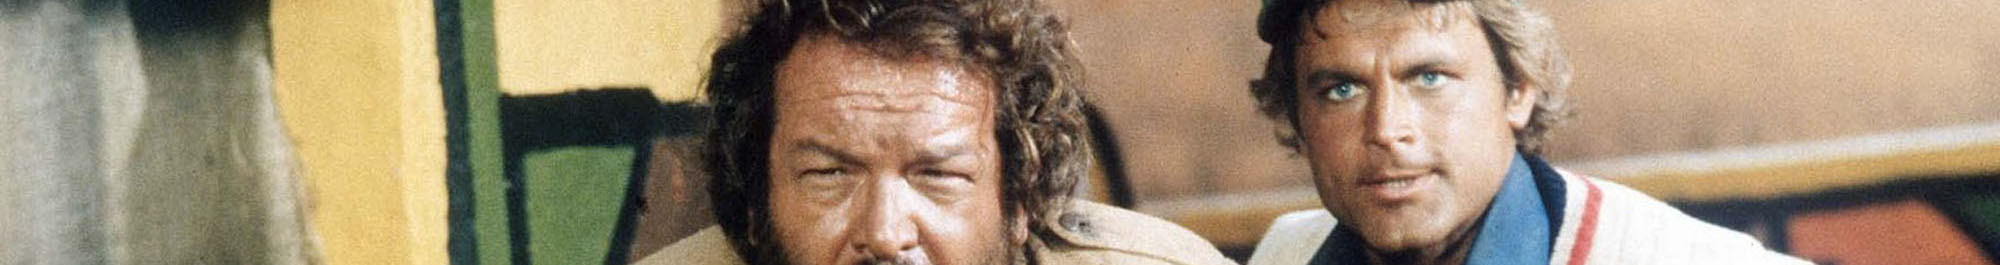 Bud Spencer und Terence Hill Fanpage